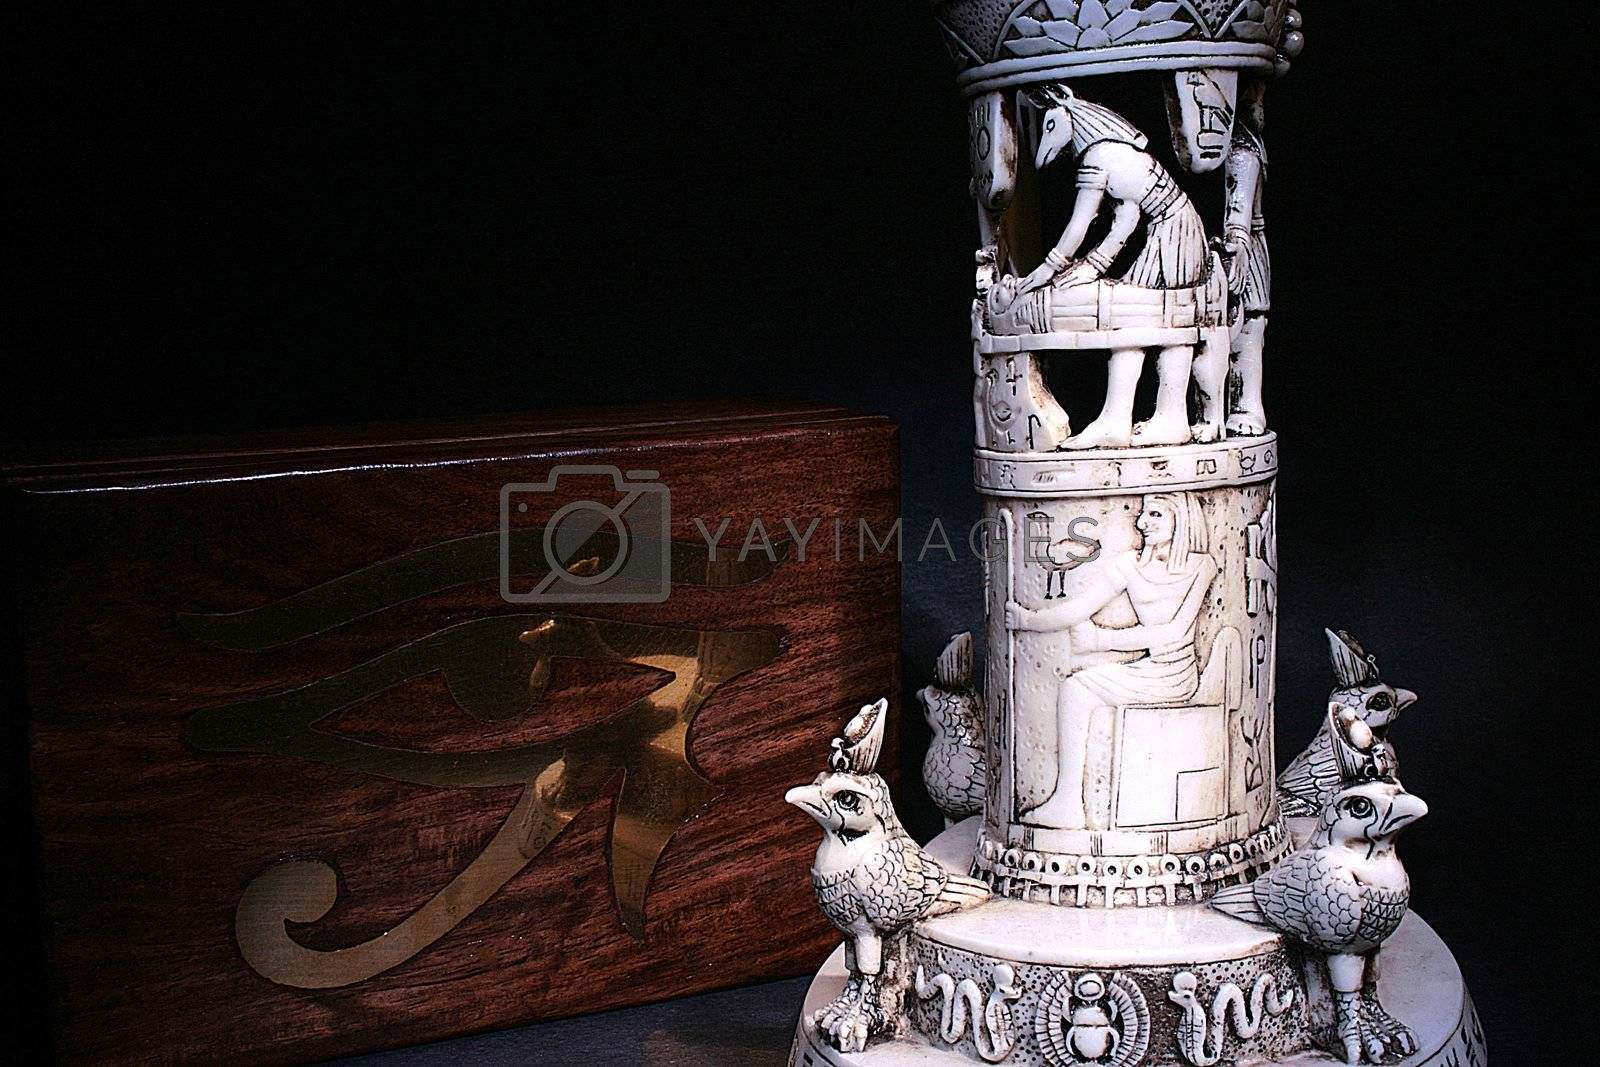 The Egyptian religious attributes: a casket with the Egyptian eye and a ritual column.